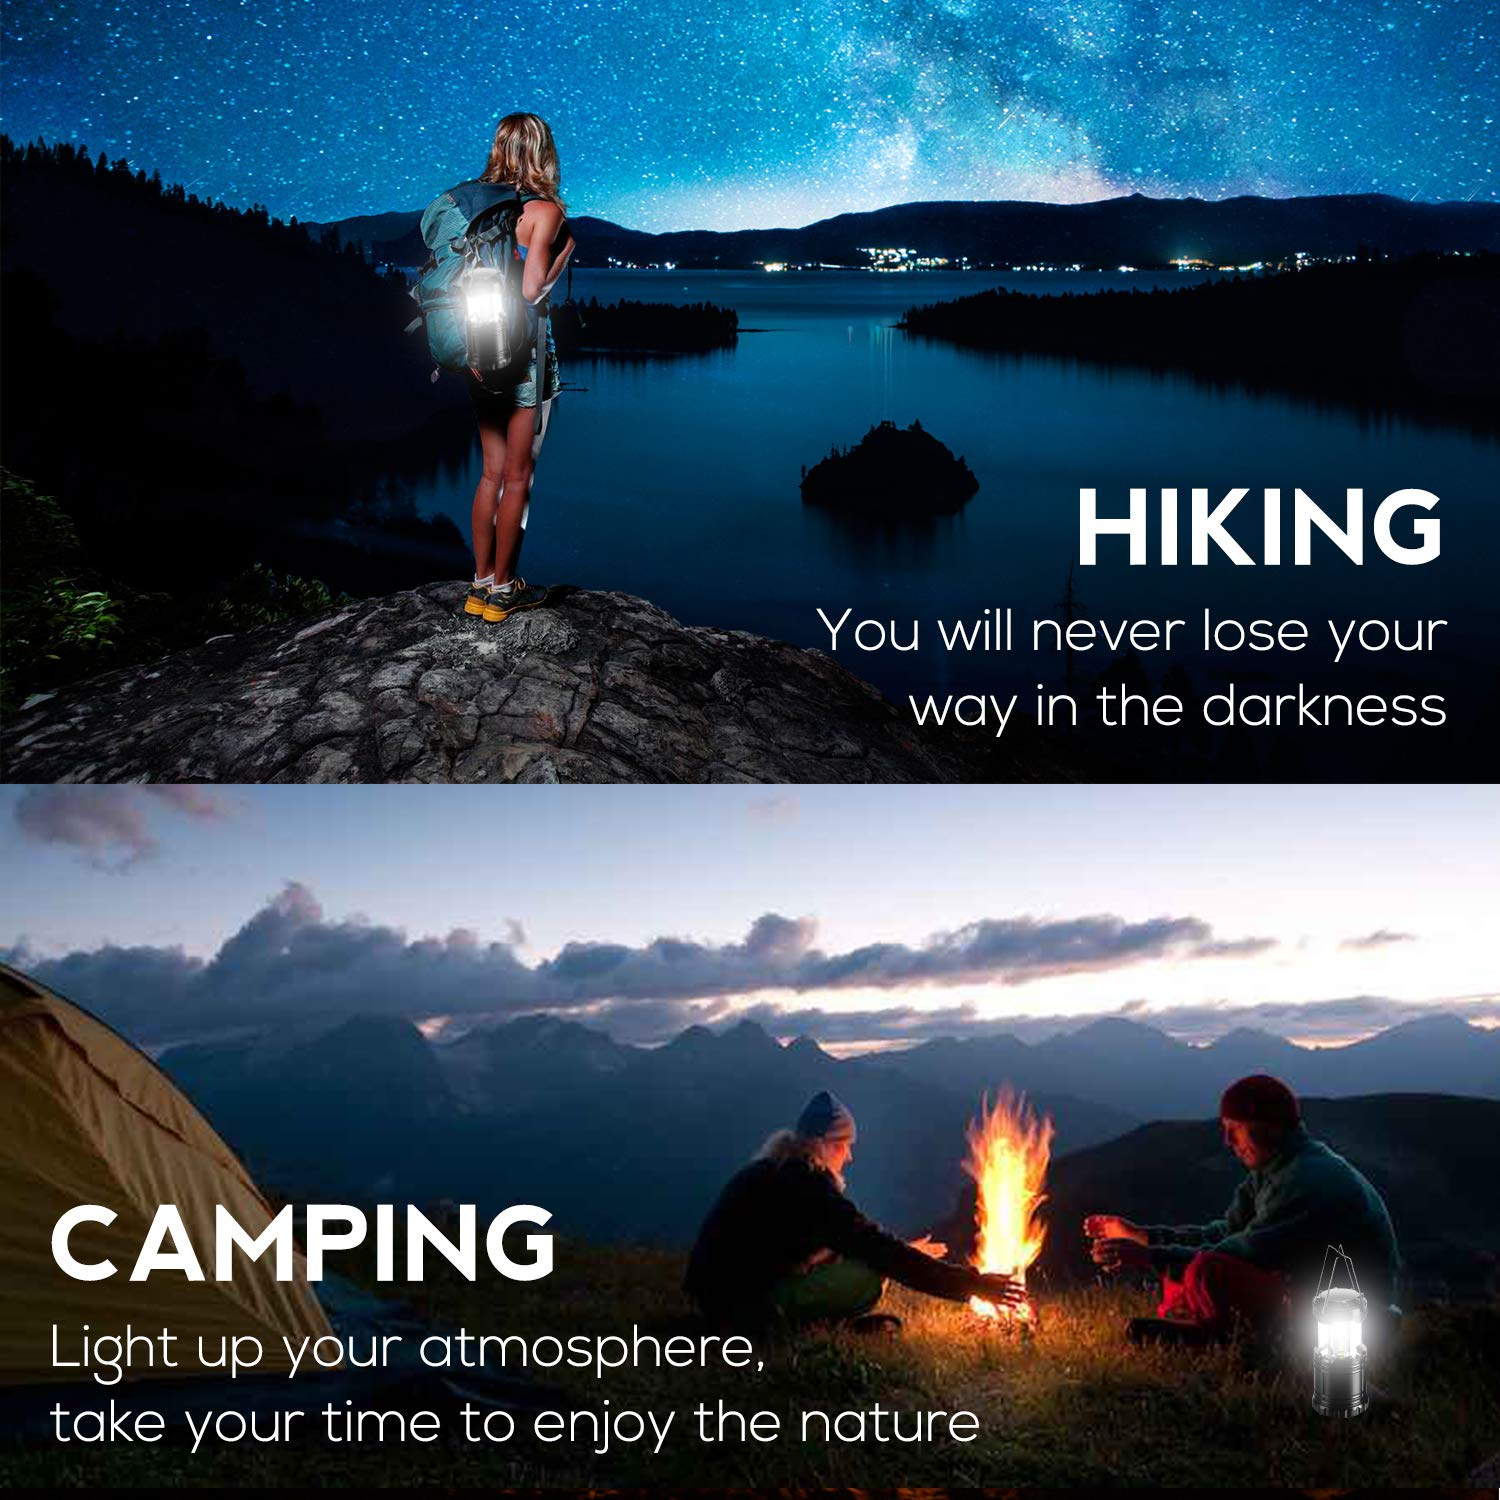 6 pack Gukos Portable LED Camping Lantern 3-Mode Flashlight Collapsible foldable Lamp for Outdoor Hiking Outages Emergency Hurricane Storms Backpacking 6-Pack